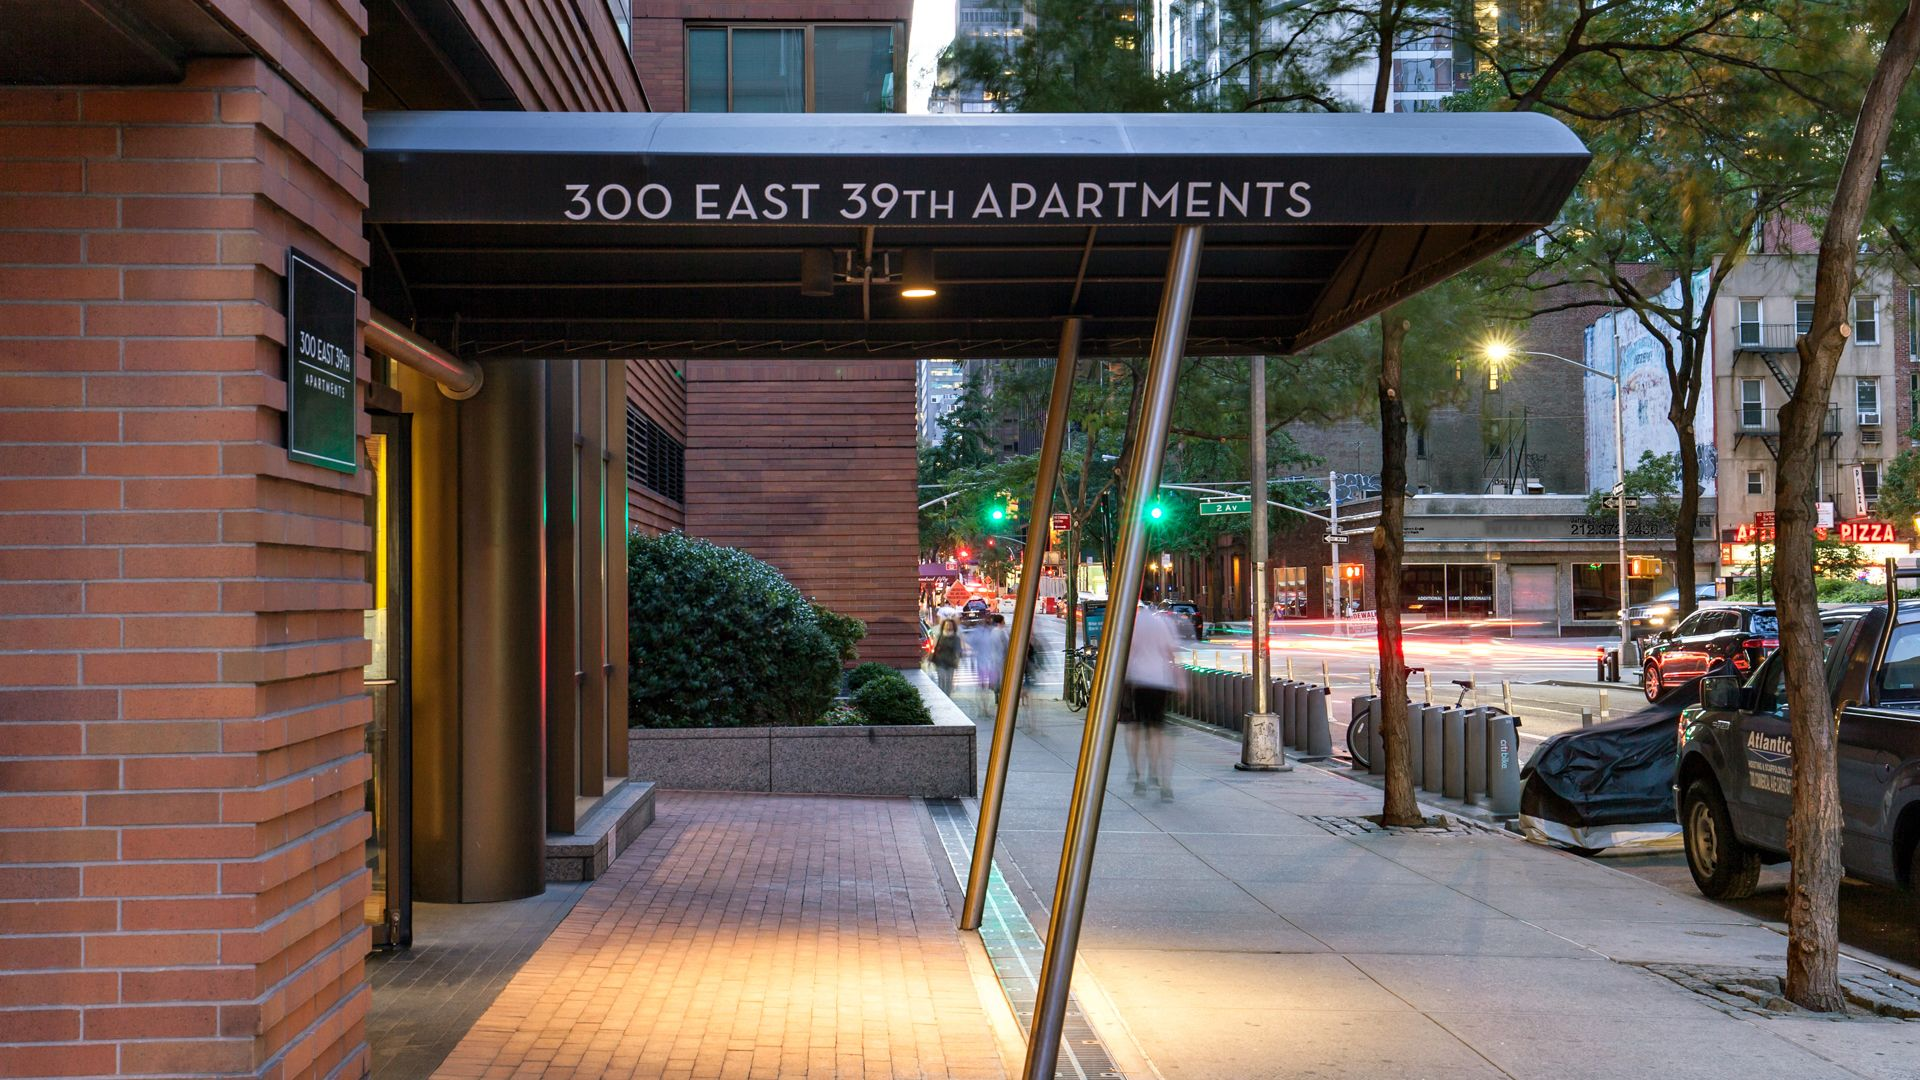 300 East 39th Apartments - Entrance